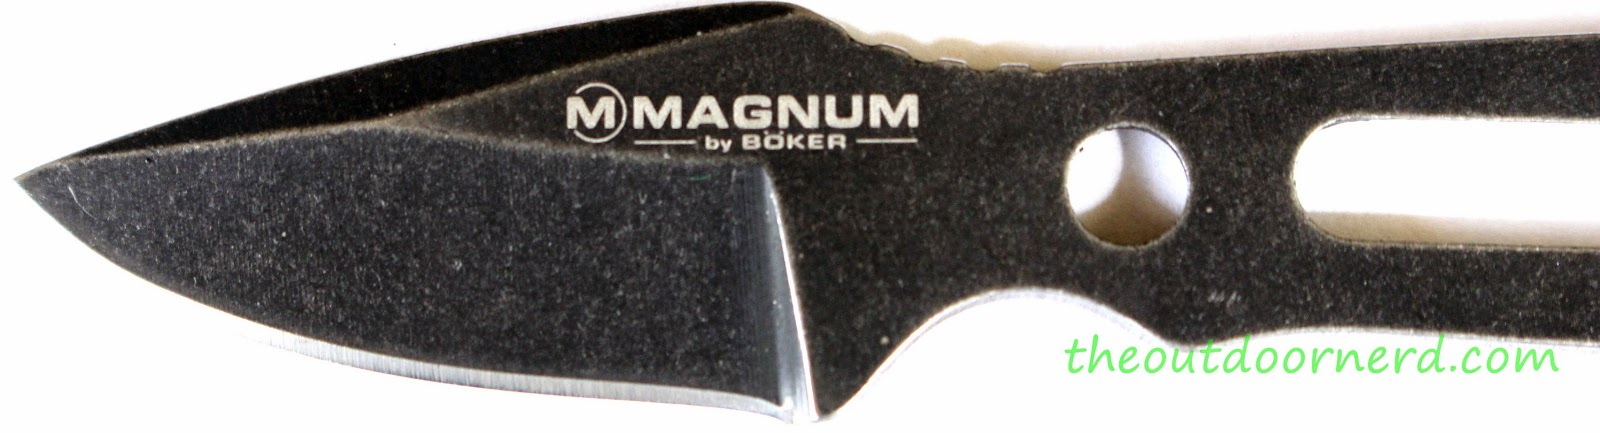 Boker Magnum 'Lil Friend' Arrowhead: Blade View 1